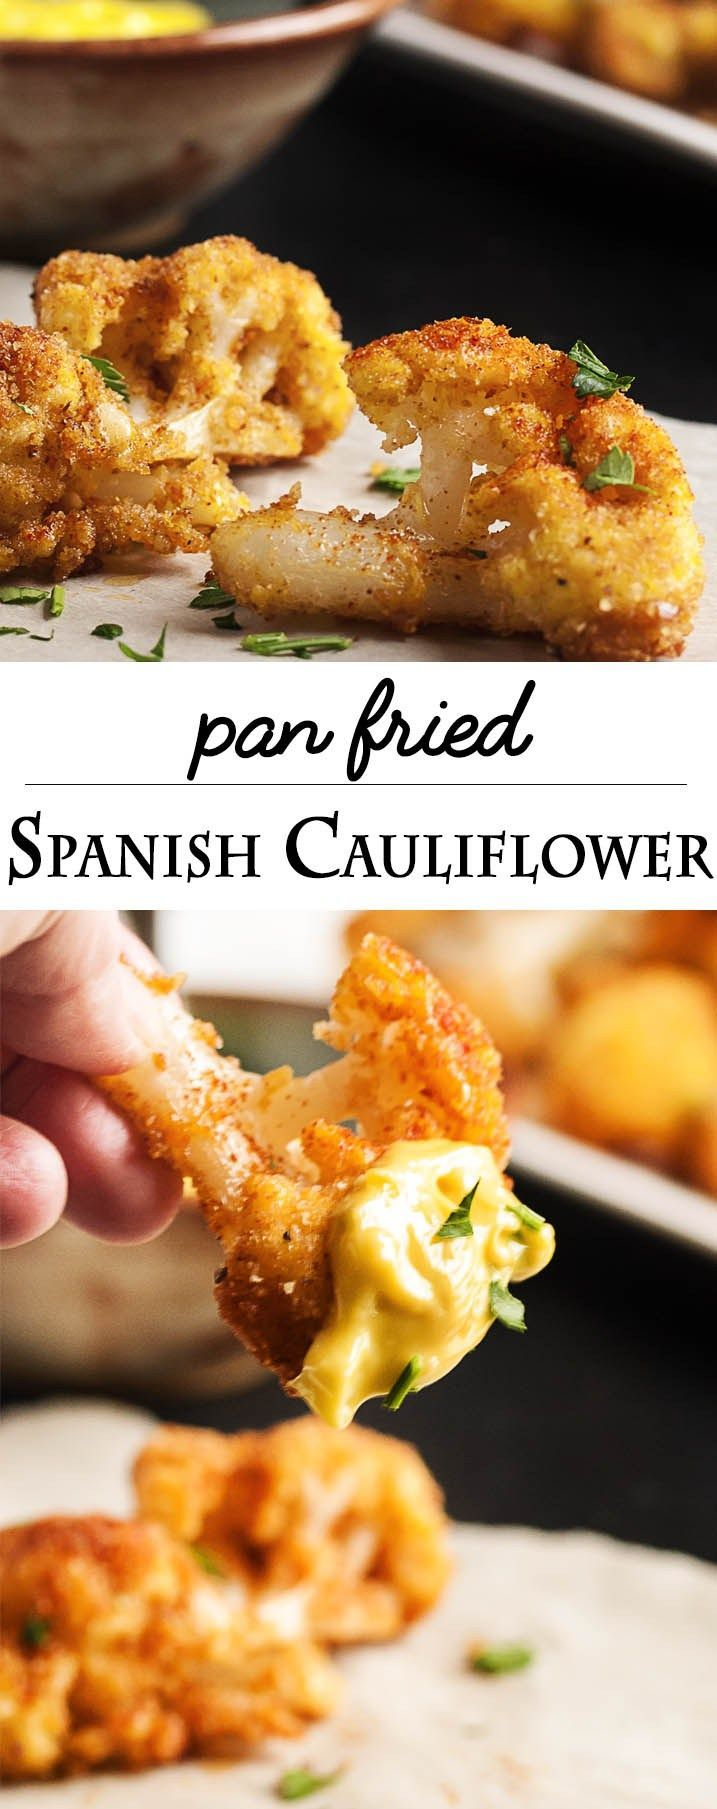 Pan Fried Spanish Cauliflower Tapas - These breaded fried cauliflower bites are a simple and tasty tapas dish you should make at your next get-together! Just a quick dunking in egg and breadcrumbs and a minute in a skillet and